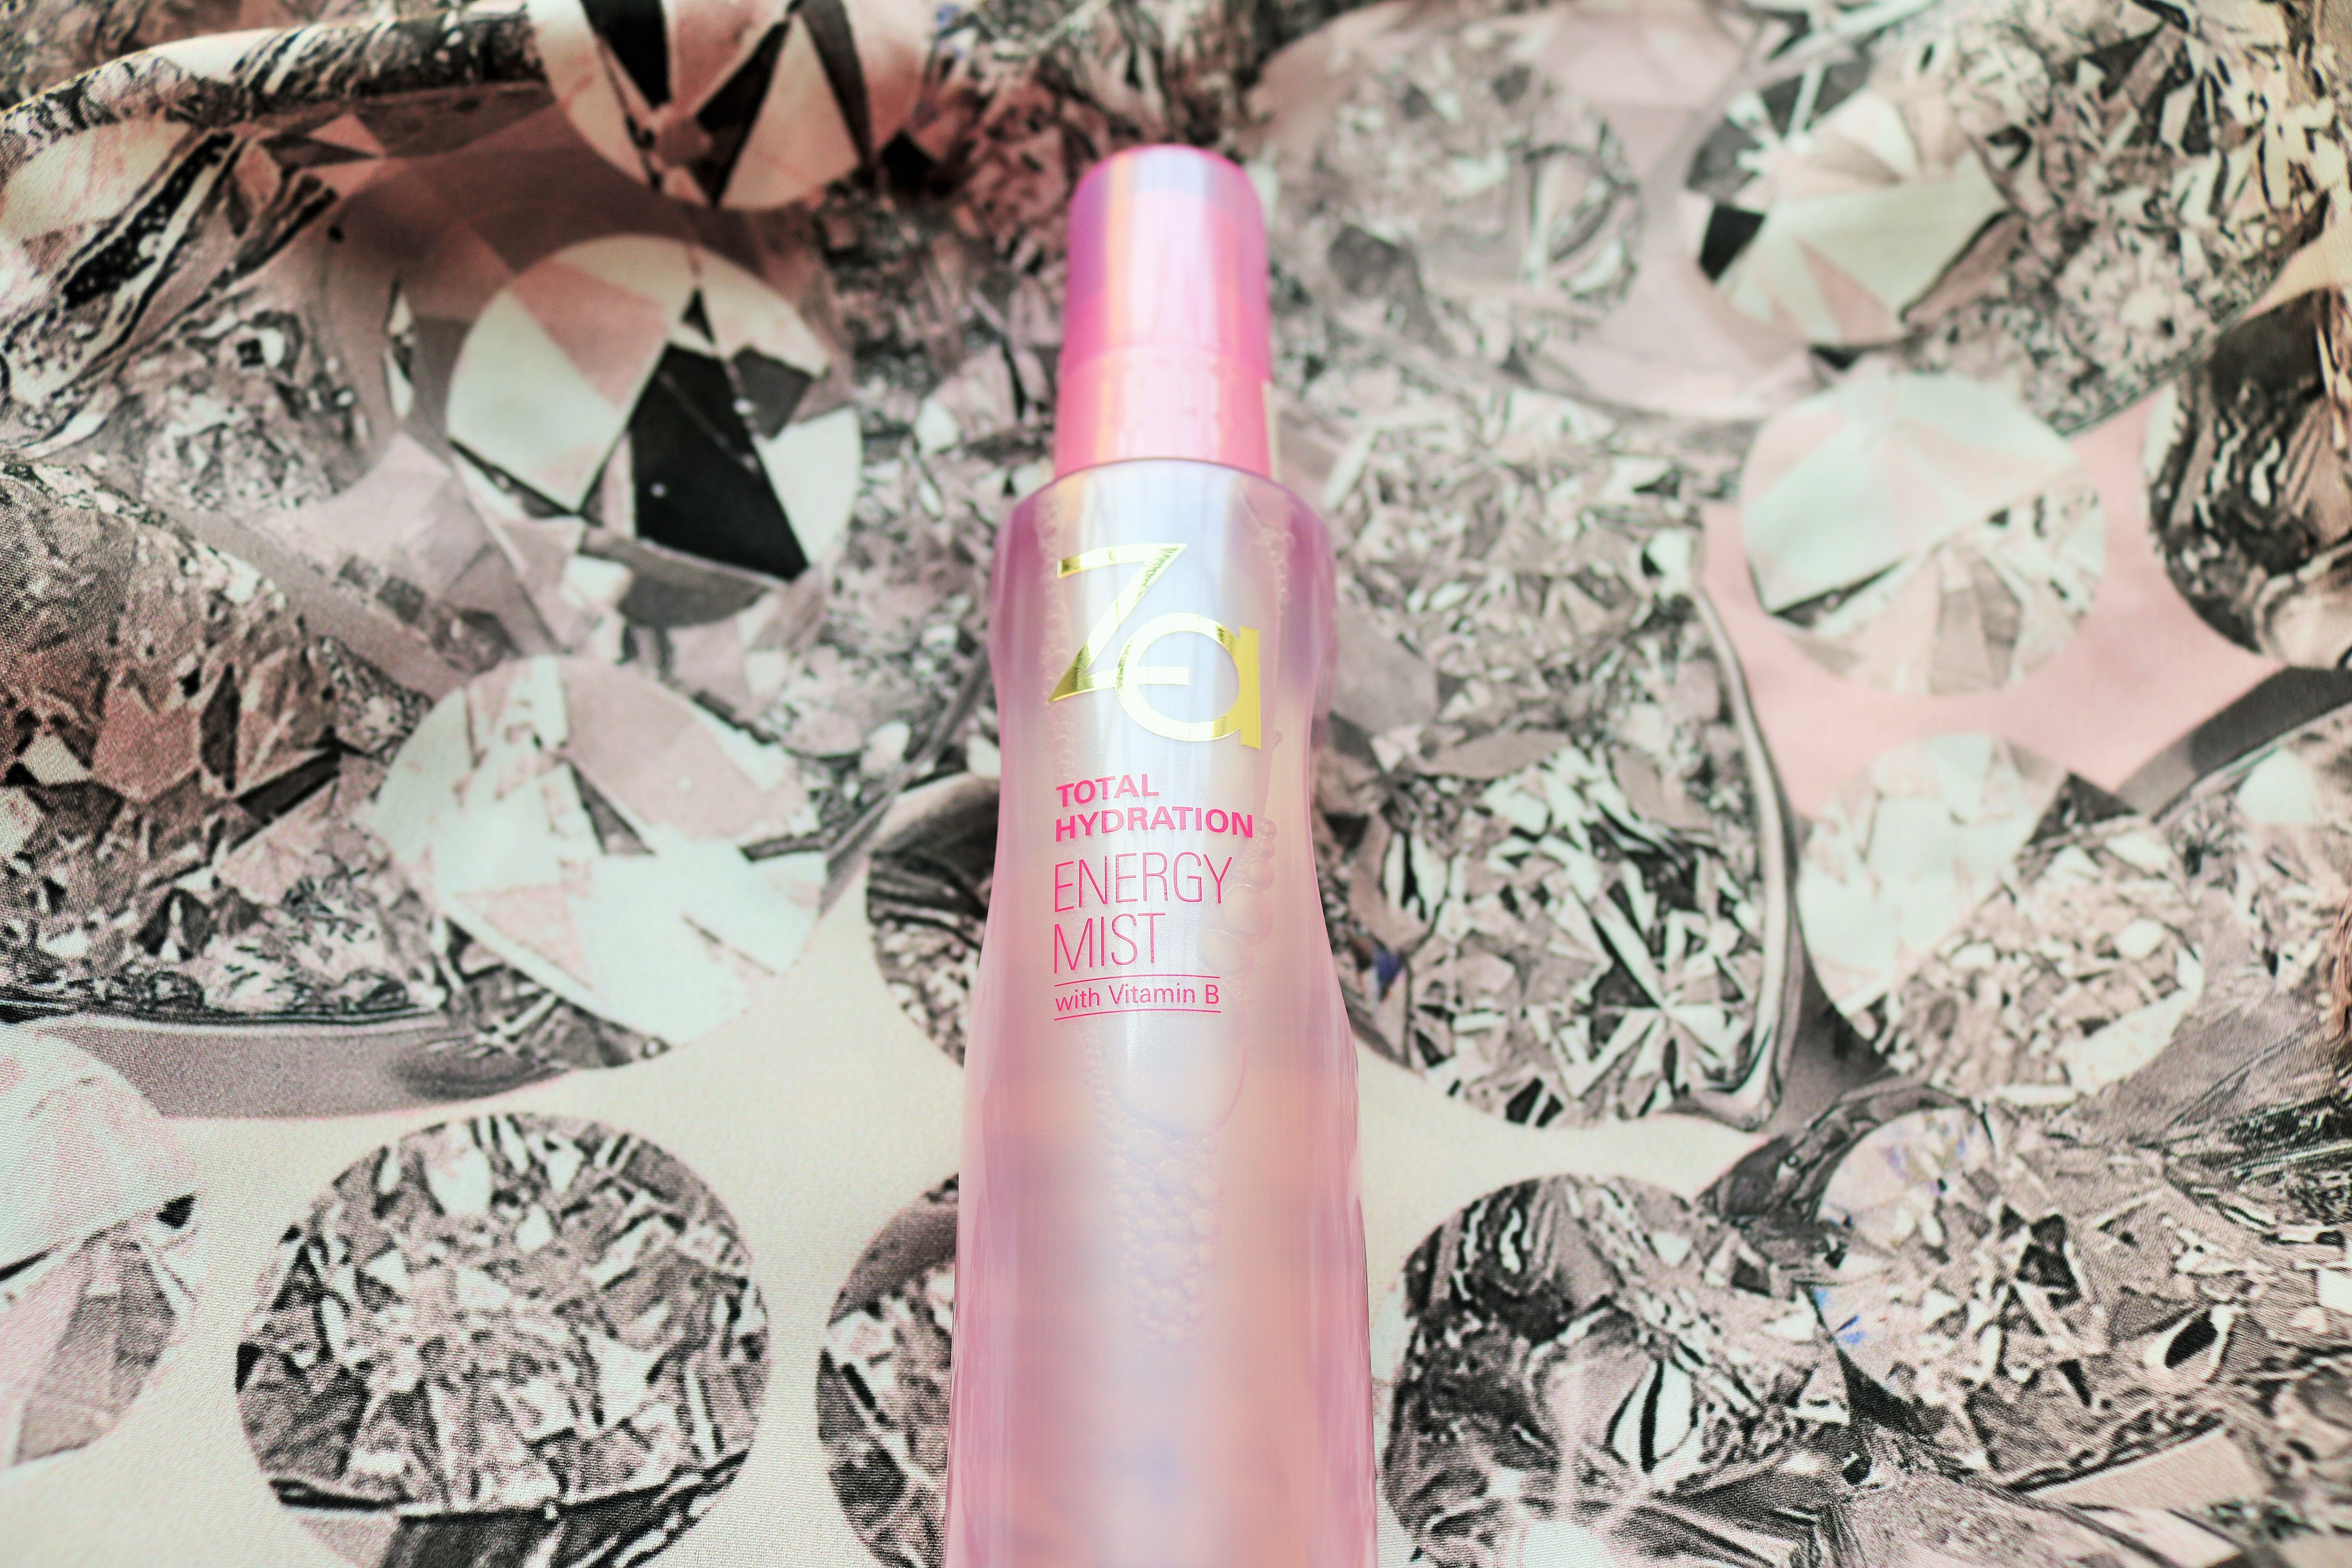 Za Total Hydration Energy Mist